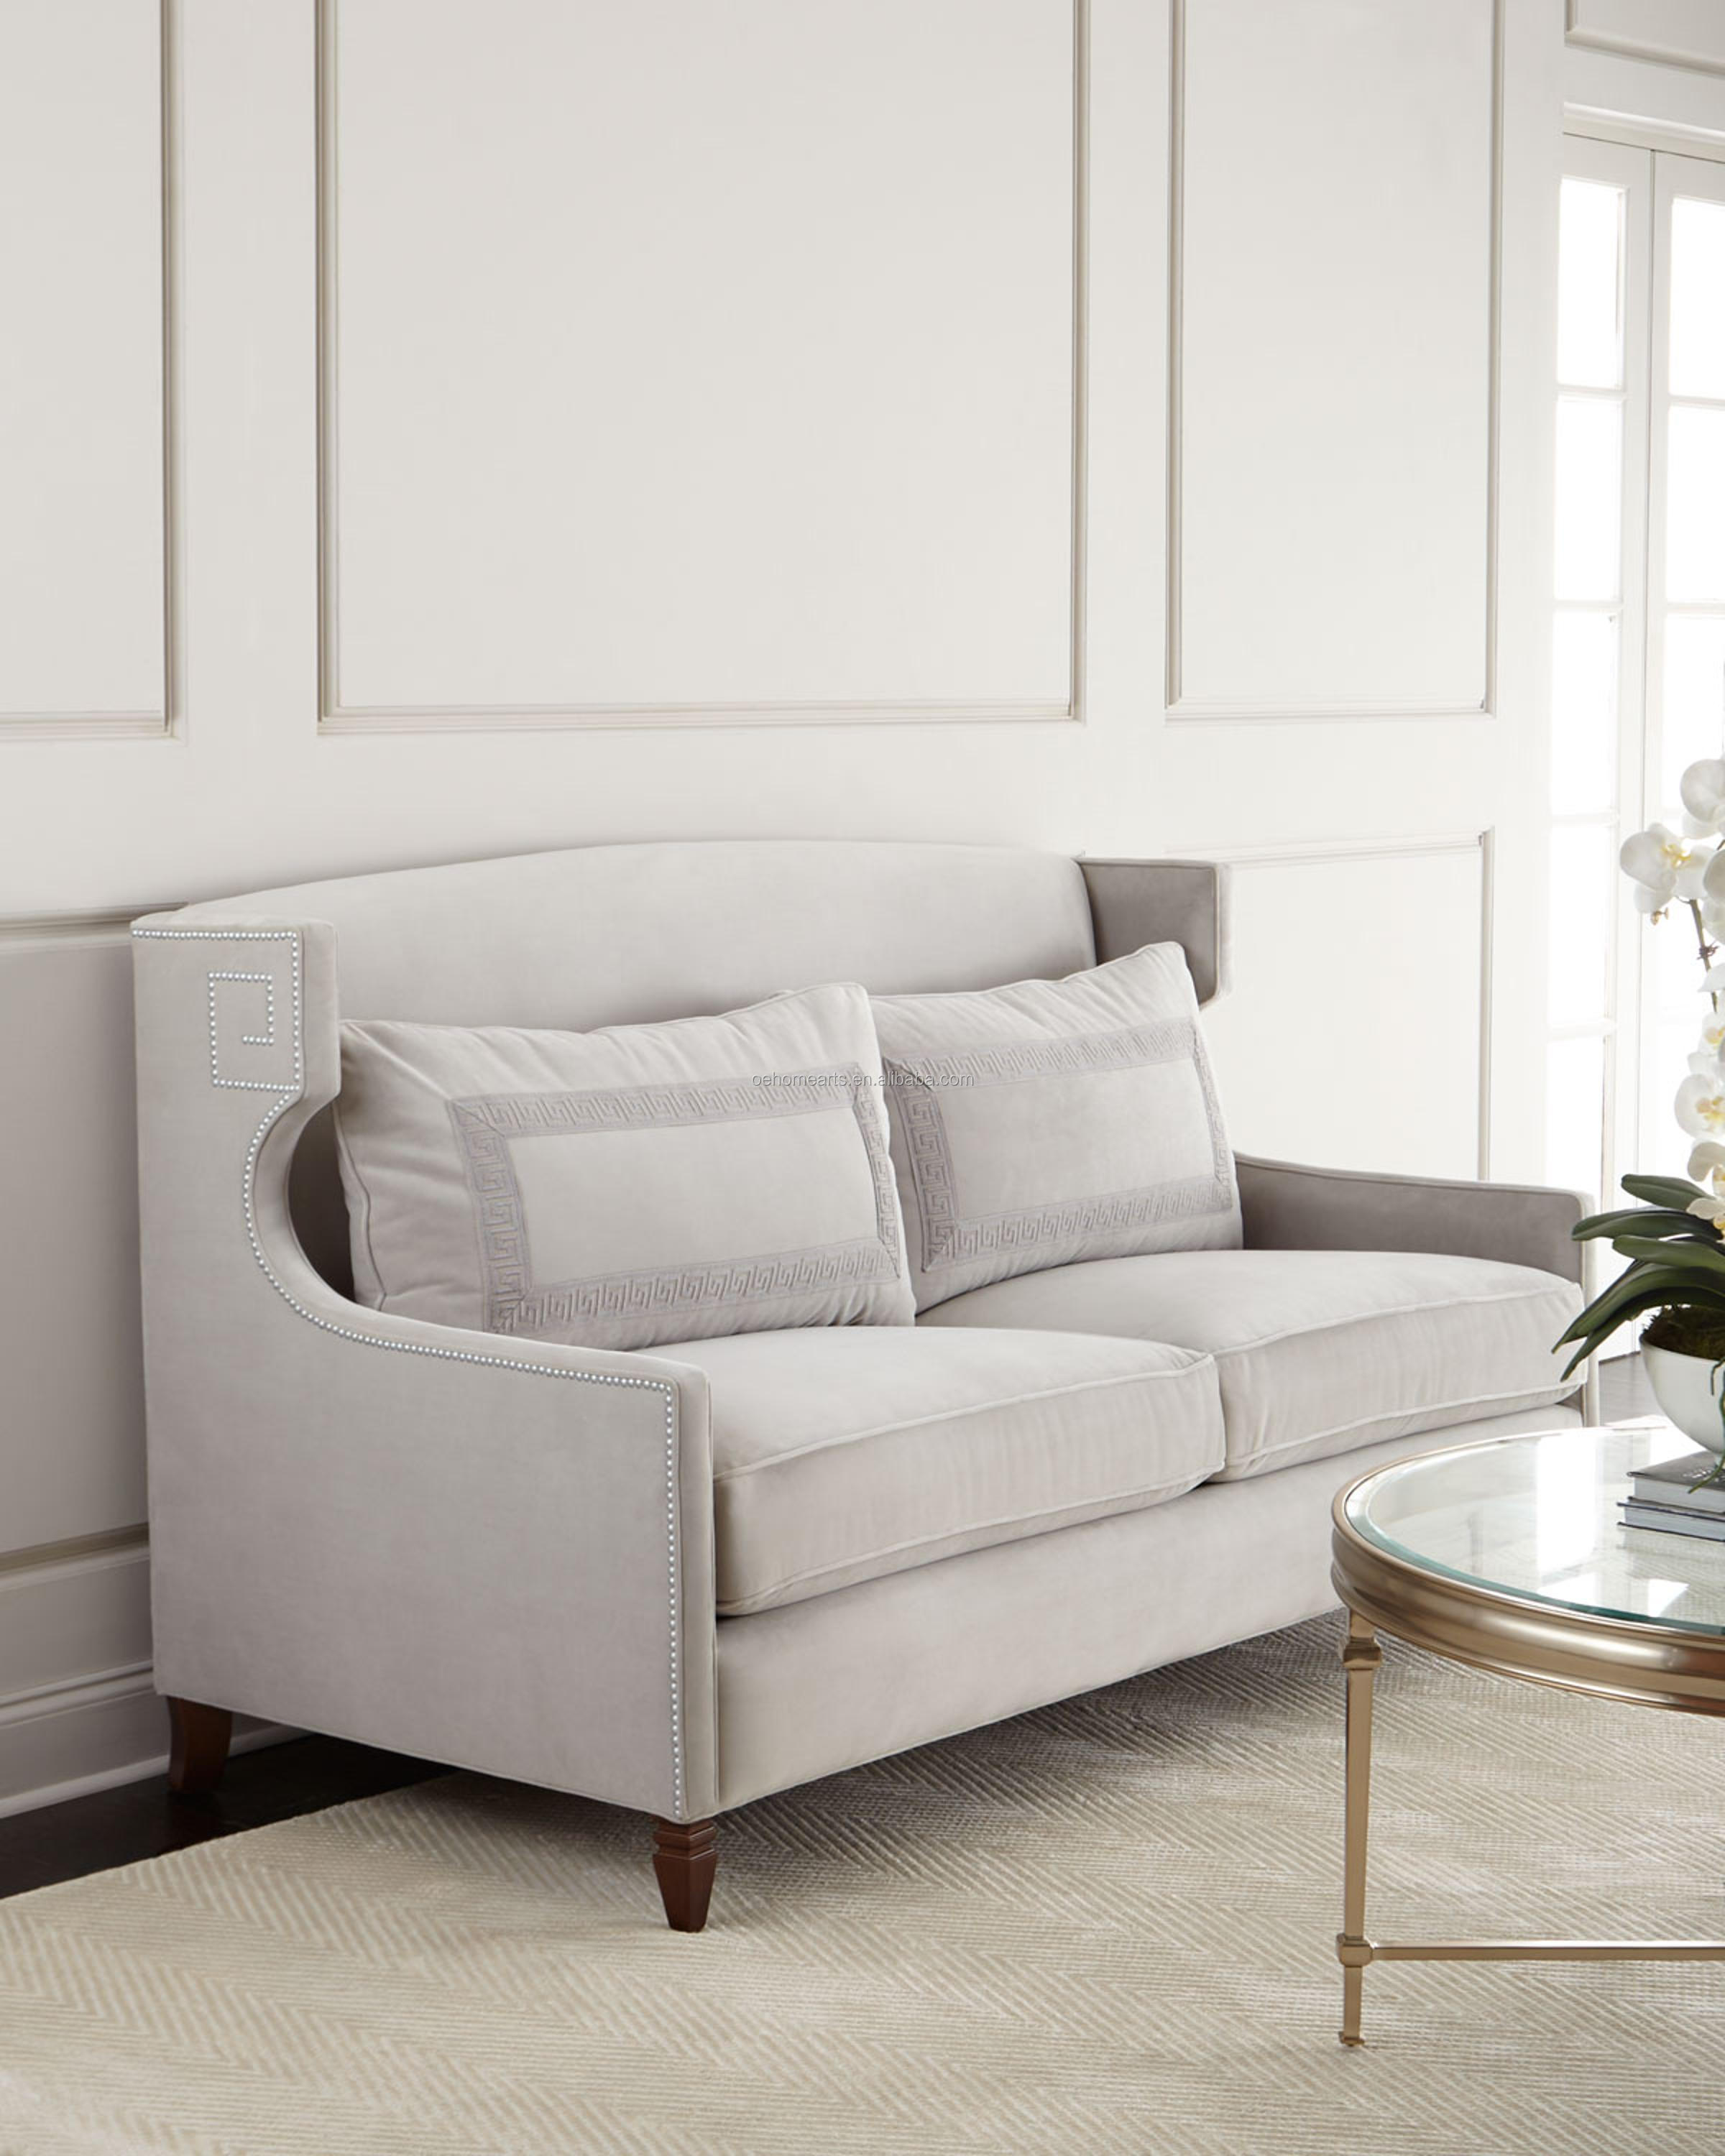 Prime Sfm00047 Hottest China Manufacturer Wholesale Sofa Set Prices In Malaysia Buy Sofa Set Prices In Malaysia China Manufacturer Sofa Set Prices In Caraccident5 Cool Chair Designs And Ideas Caraccident5Info